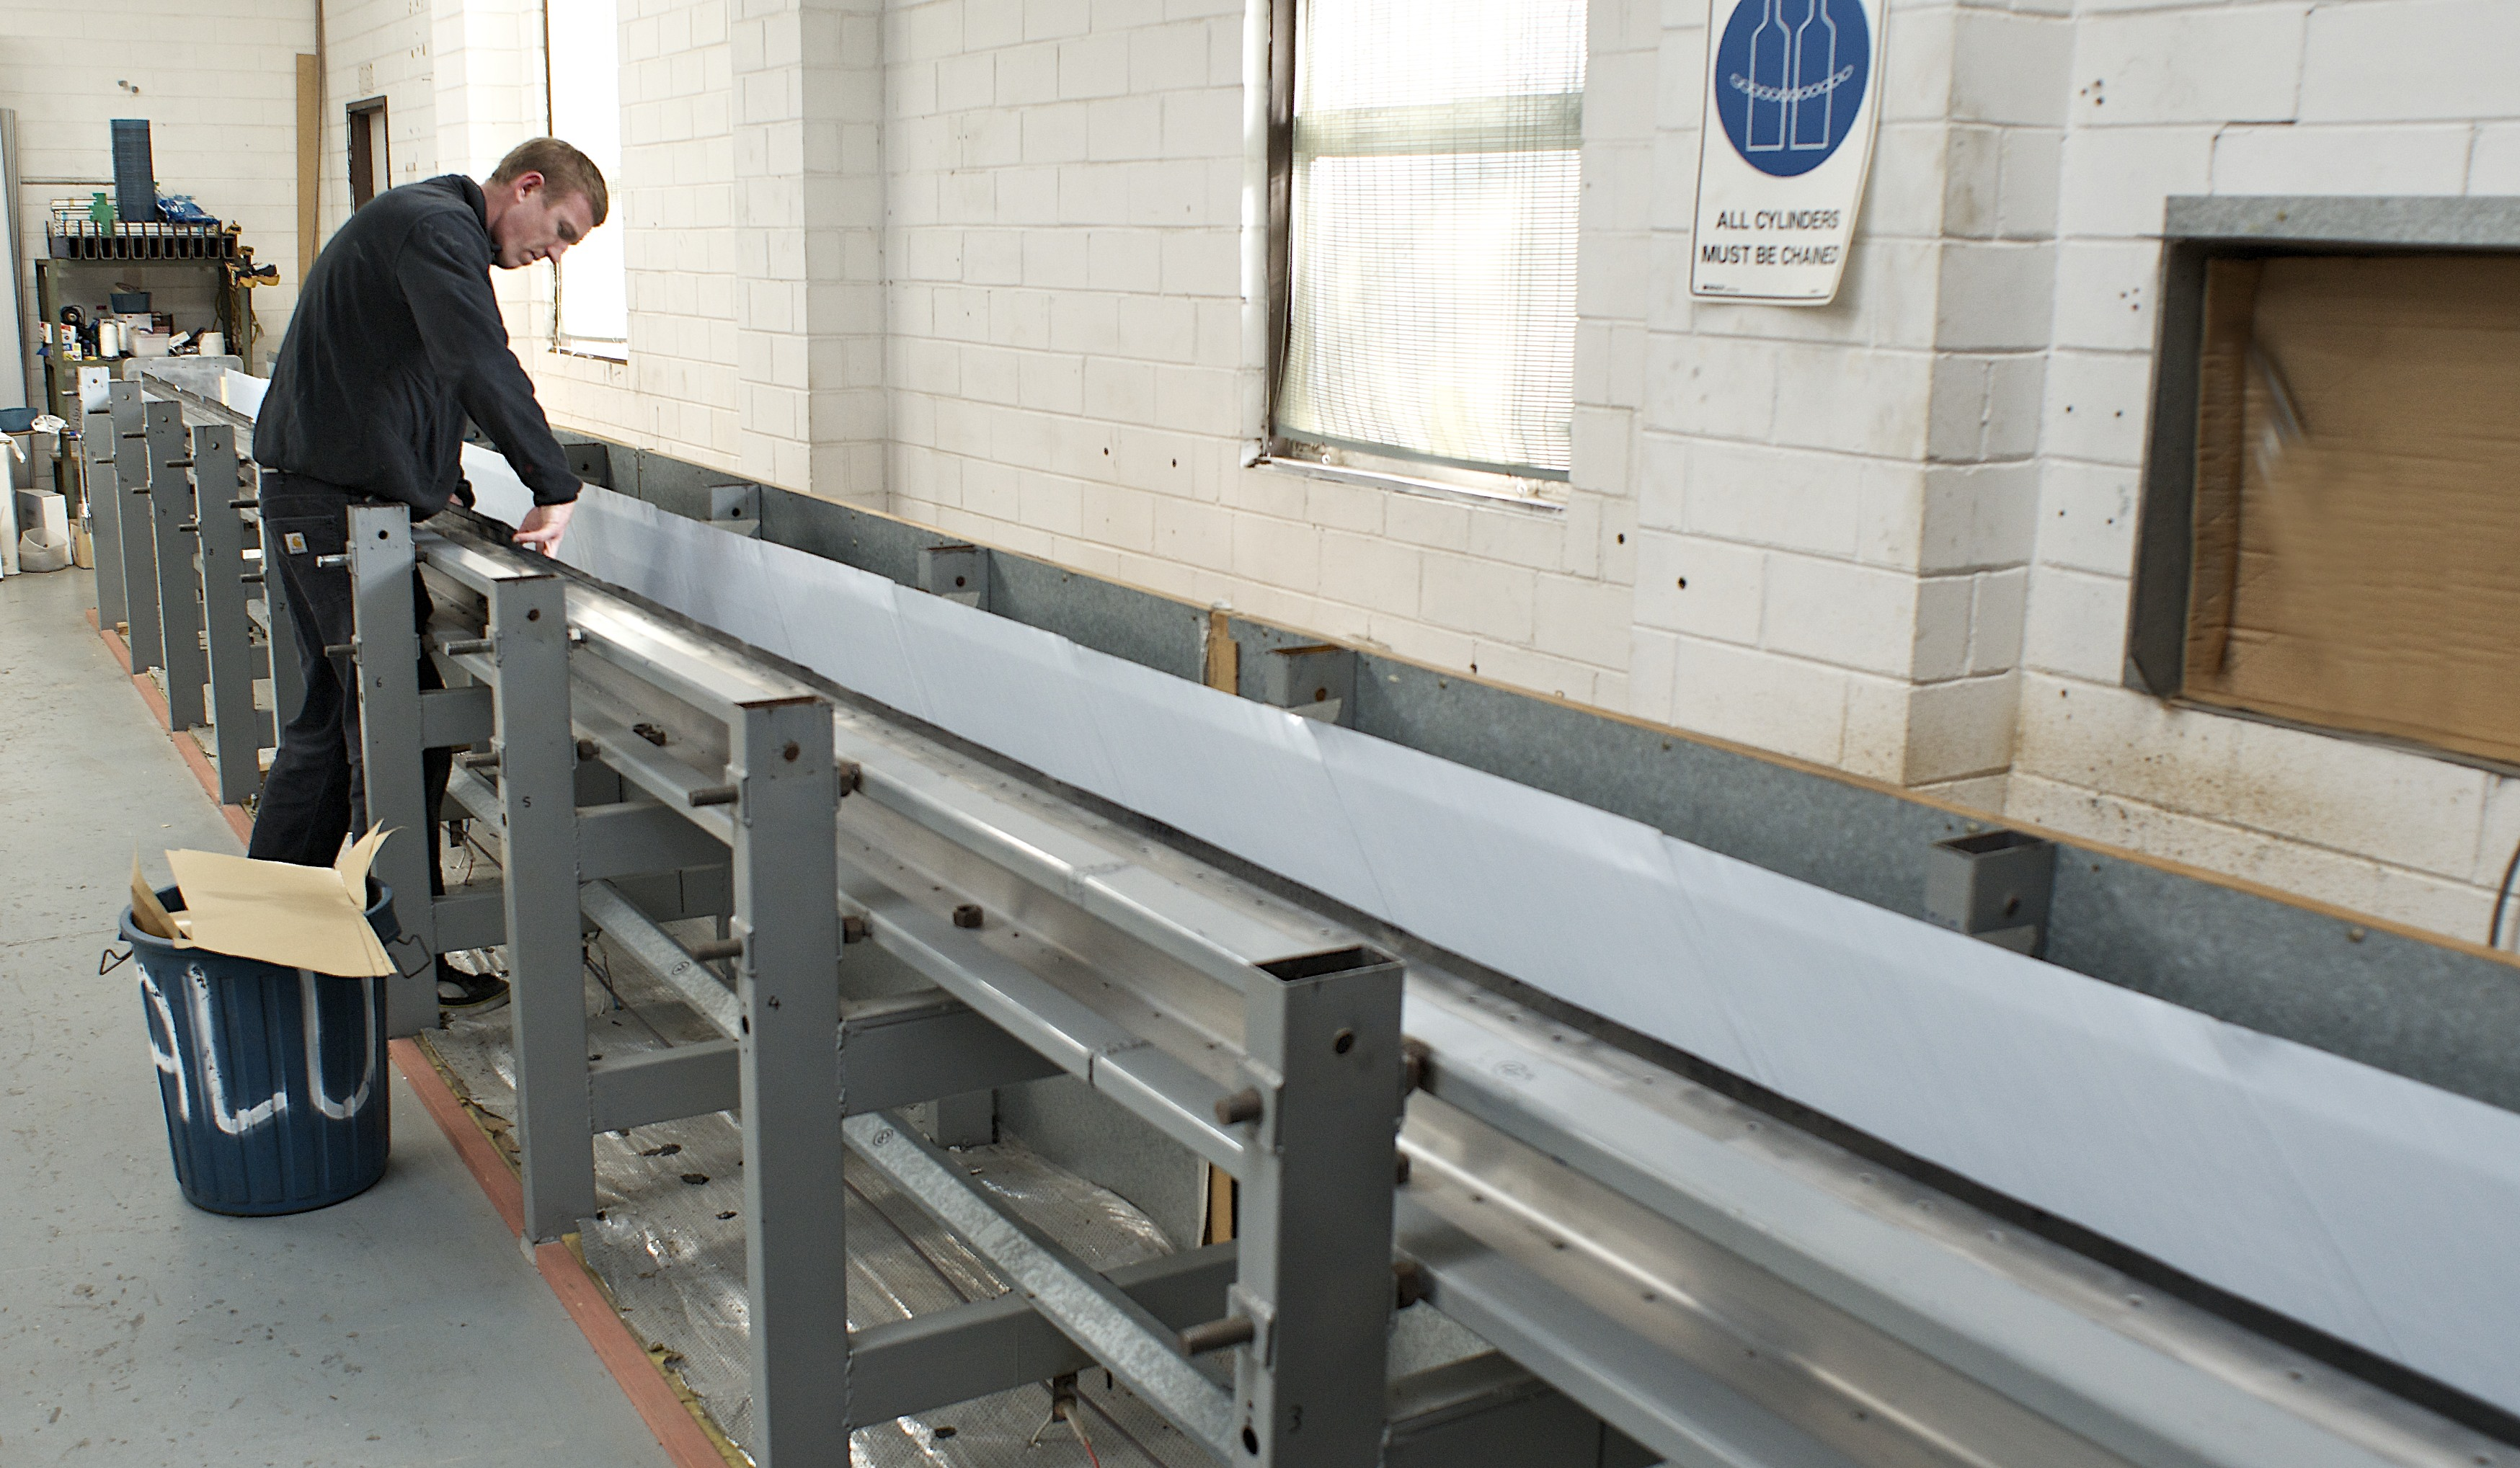 Laying up a wide-span carbon fibre gantry